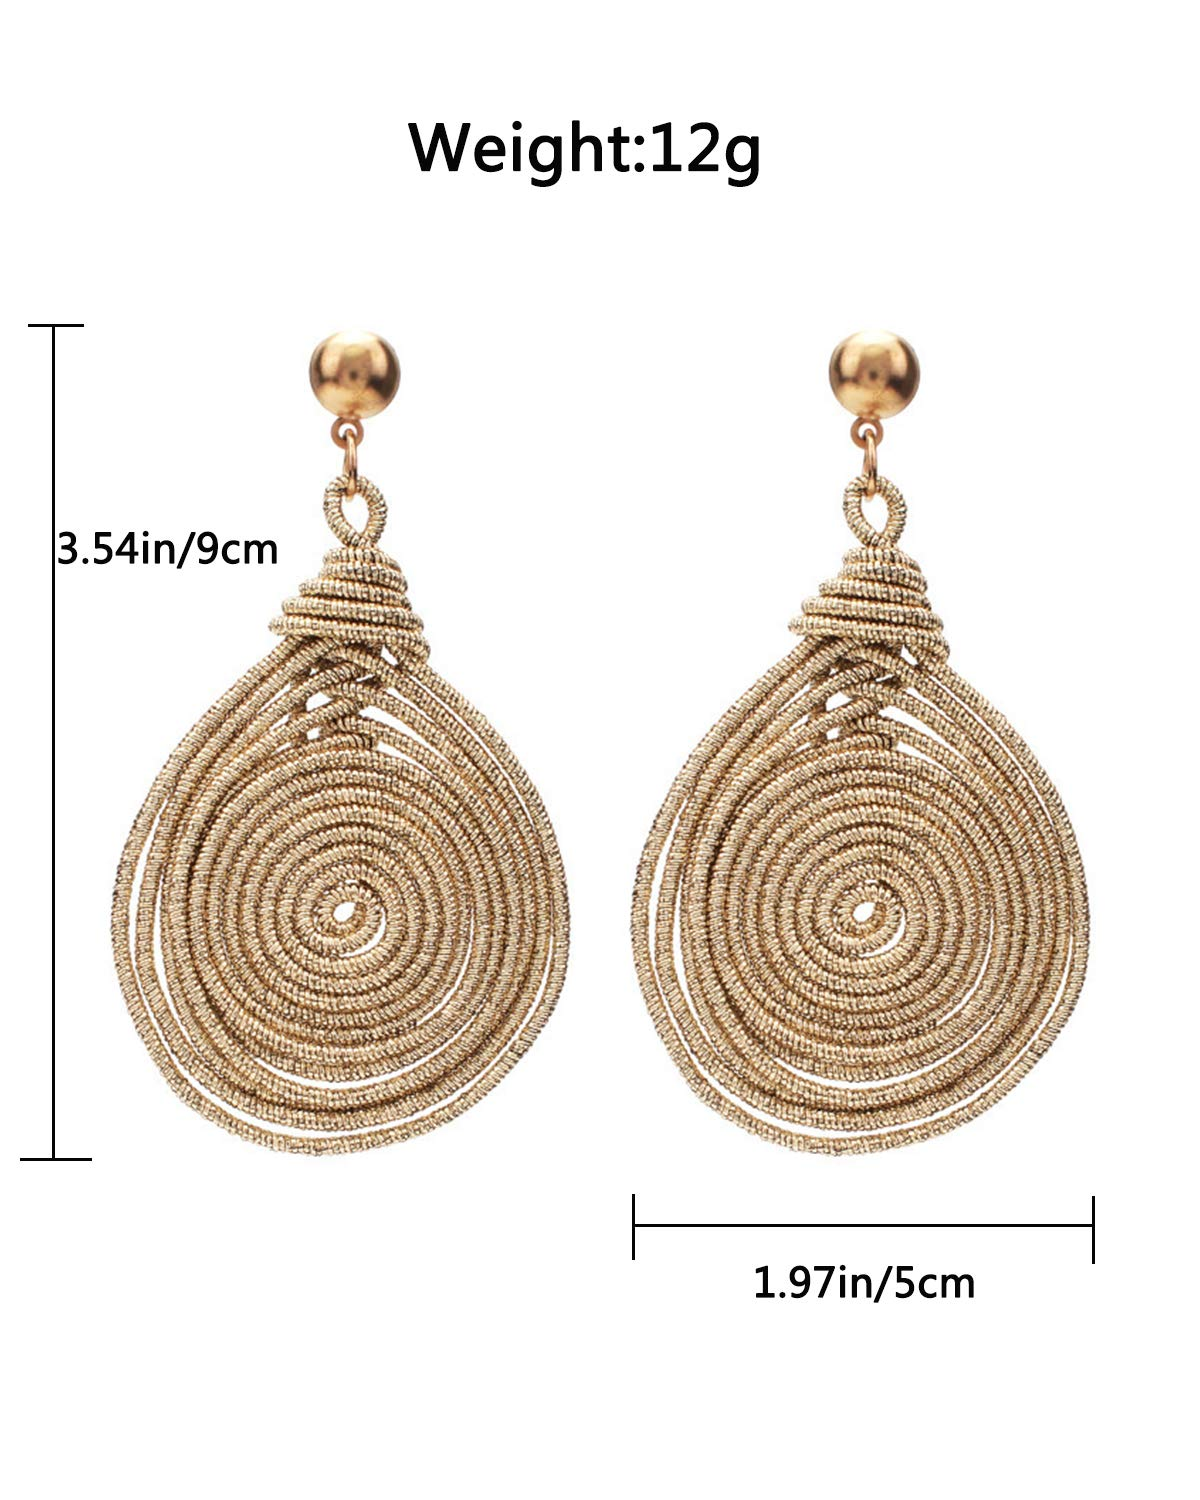 Vintage Statement Earrings Geometric Metal Multi Layer Hoop Long Dlange Earrings for Women Wedding Party